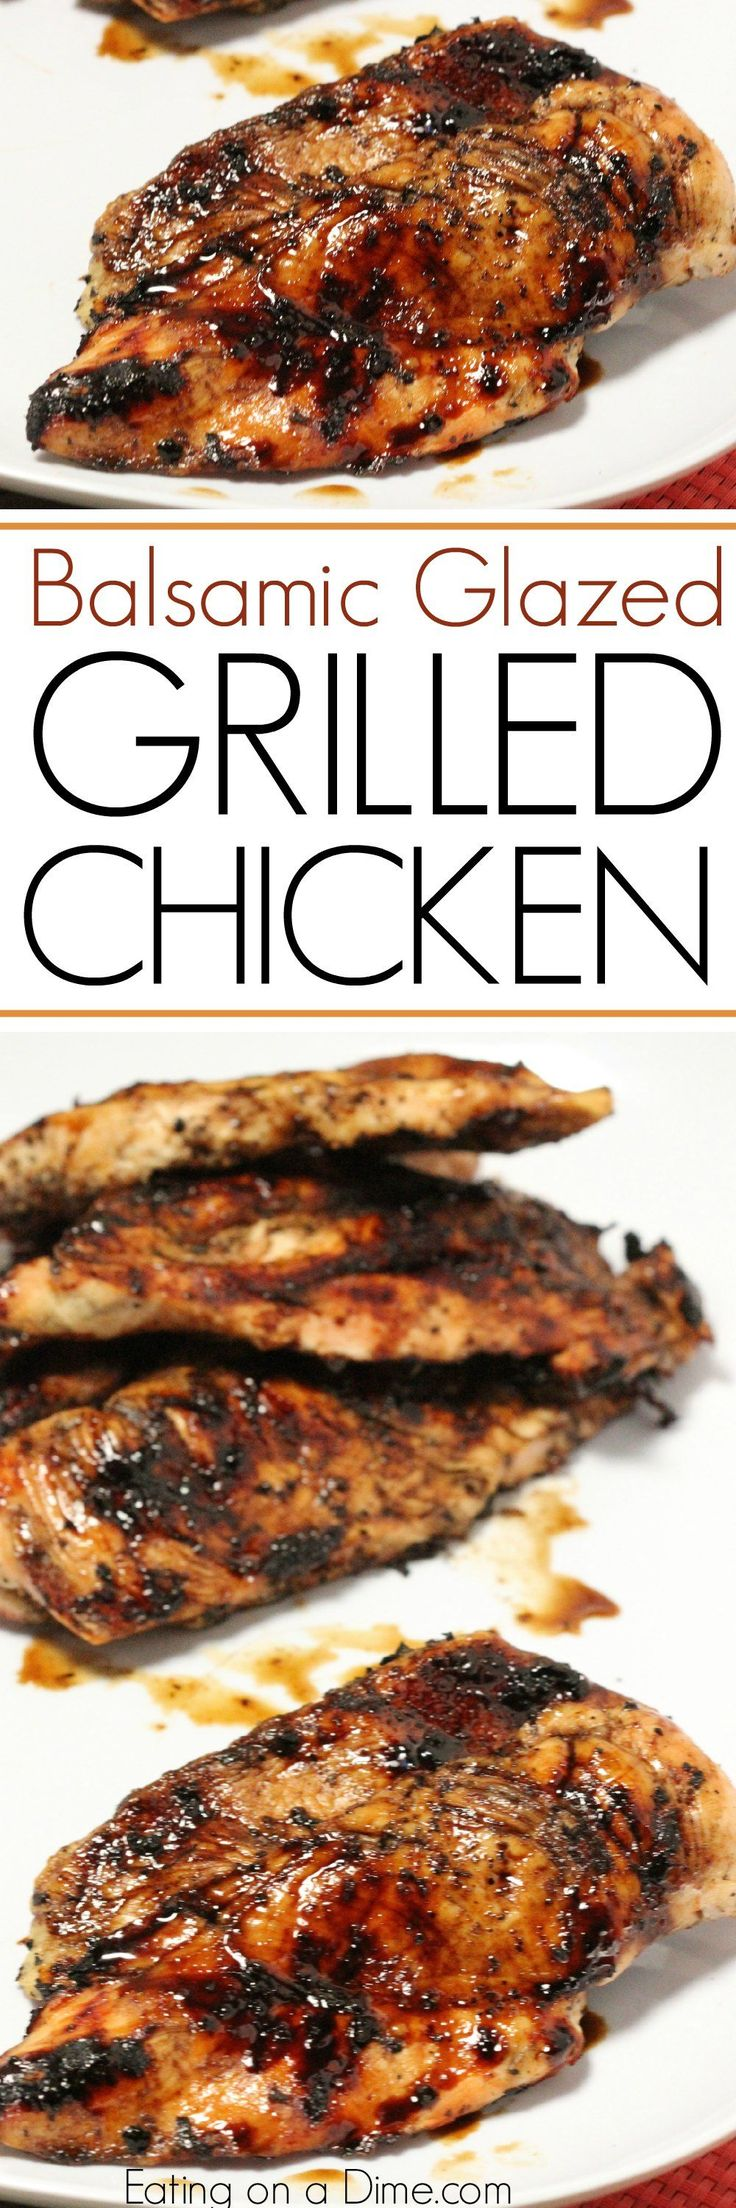 Balsamic glazed chicken - easy to to make recipe!